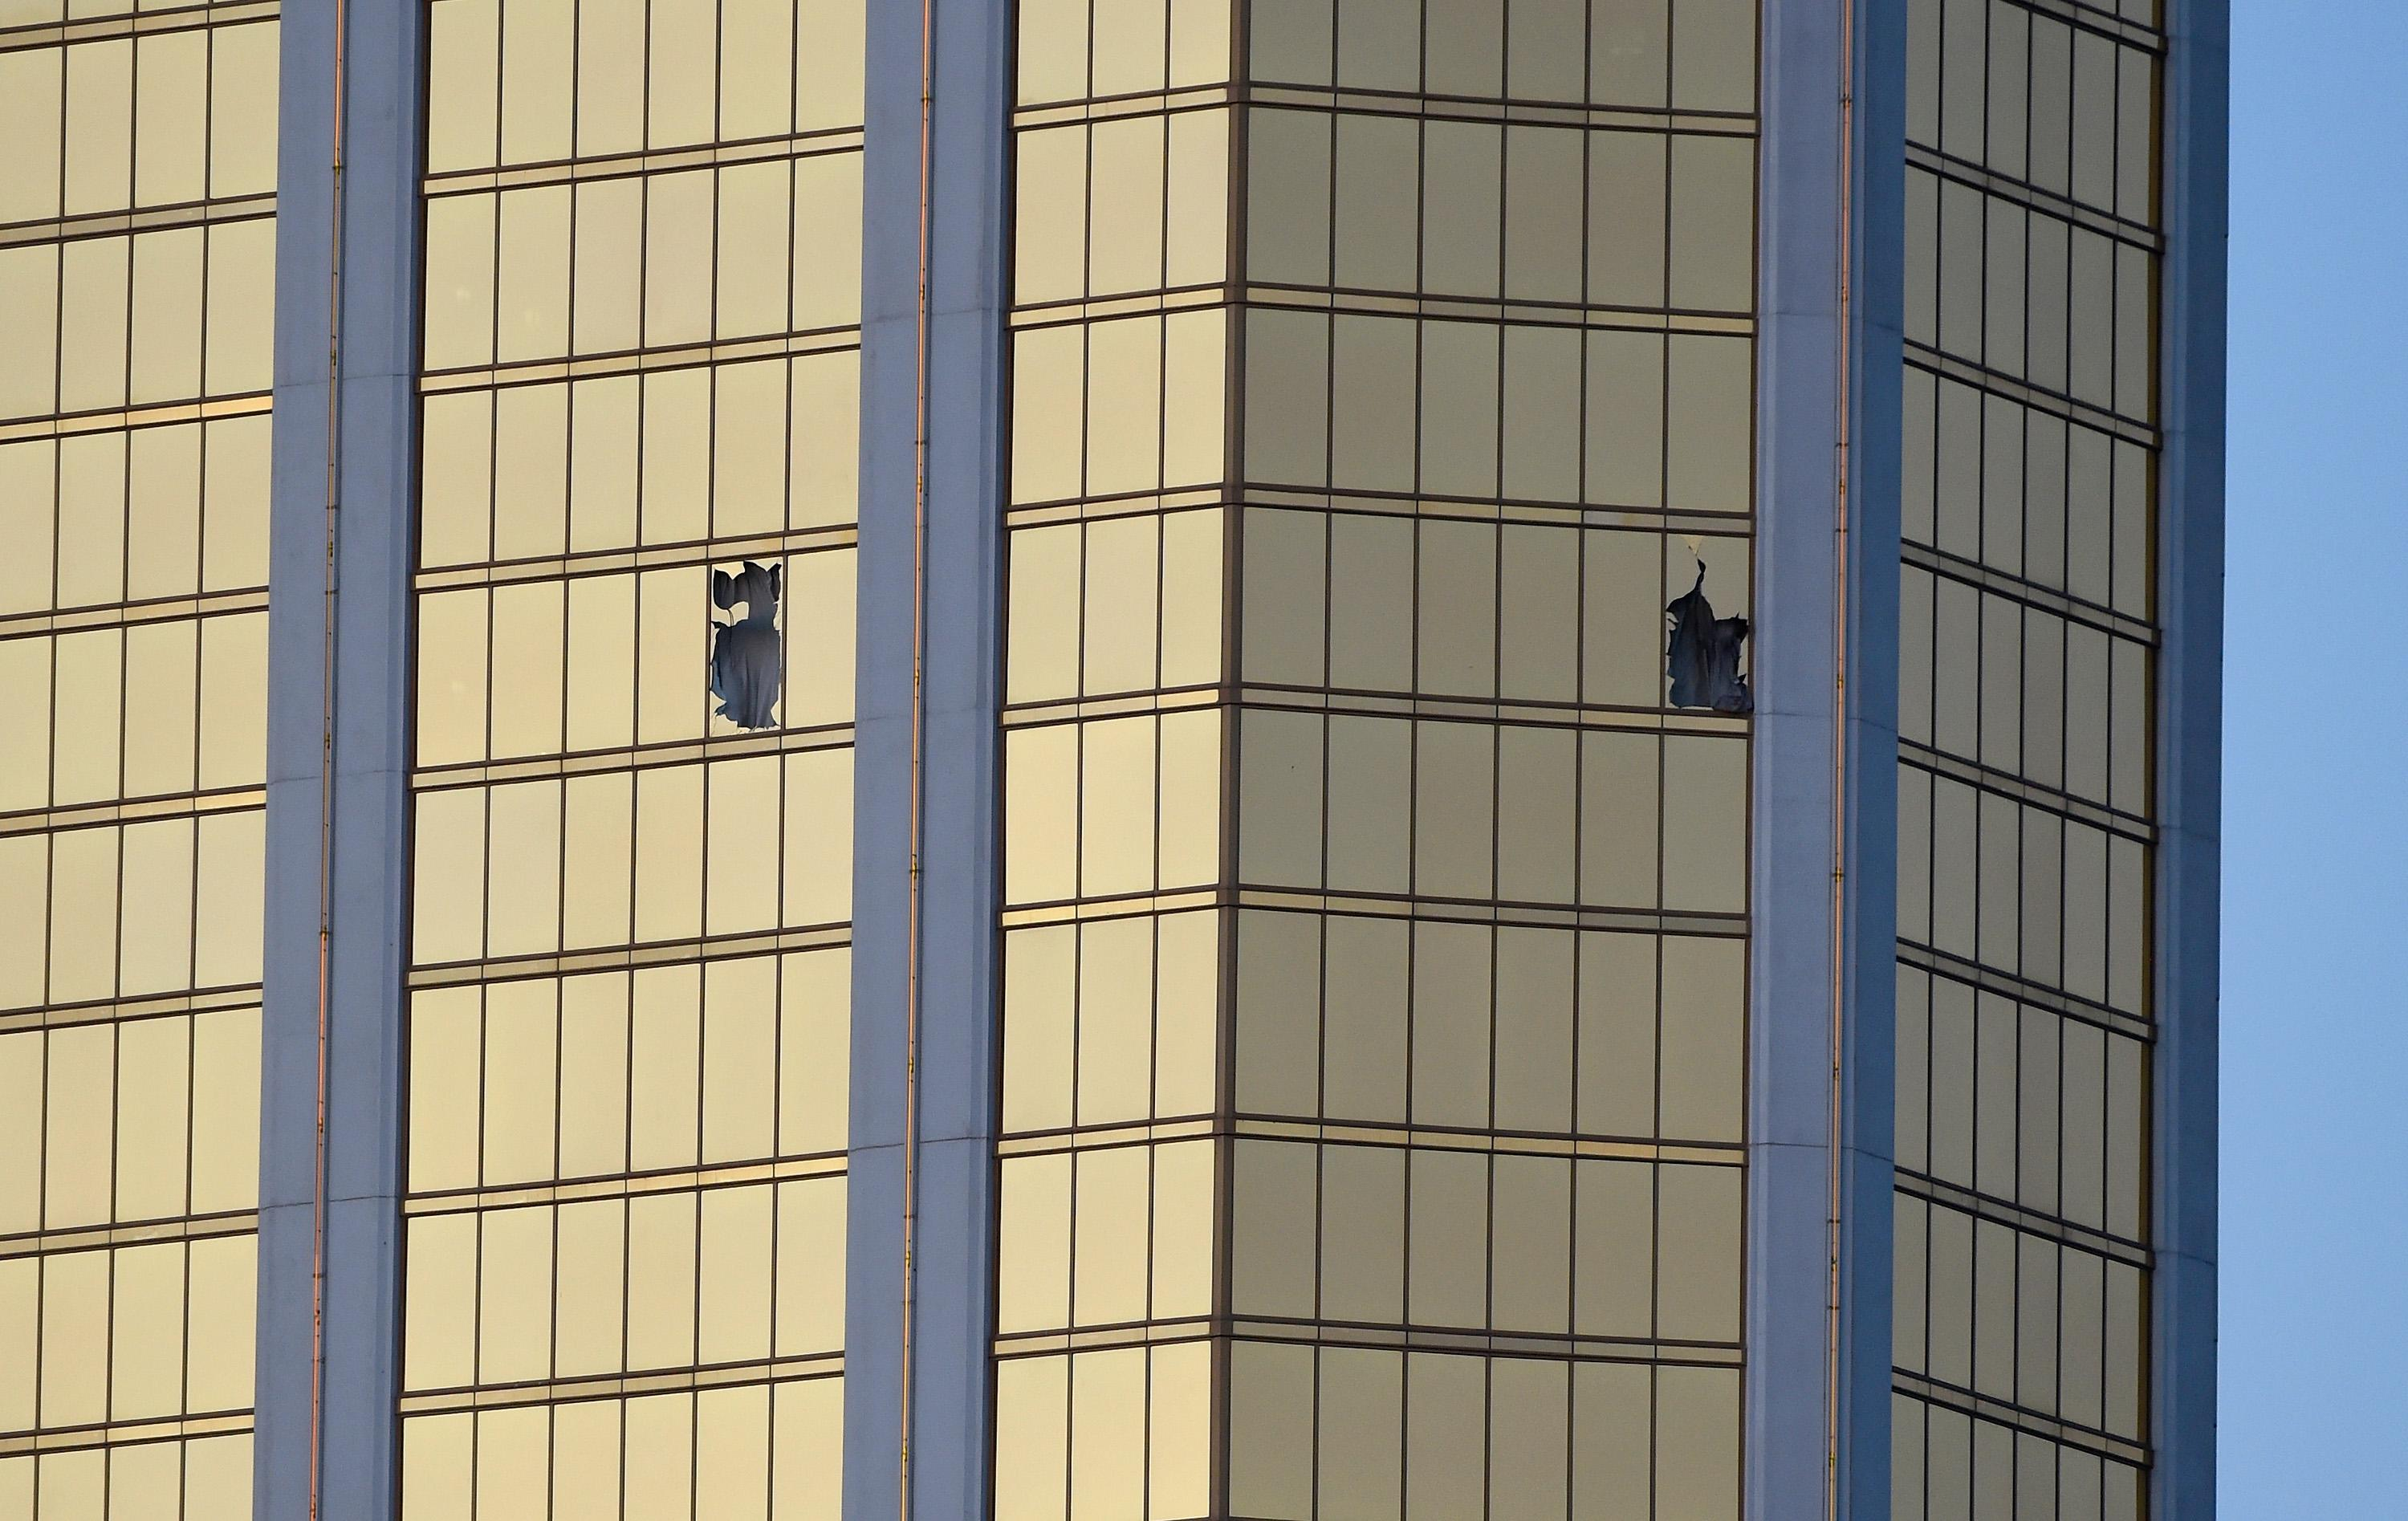 The broken windows of a room on the 32nd floor of the Mandalay Bay Hotel in Las Vegas (Picture: Getty)